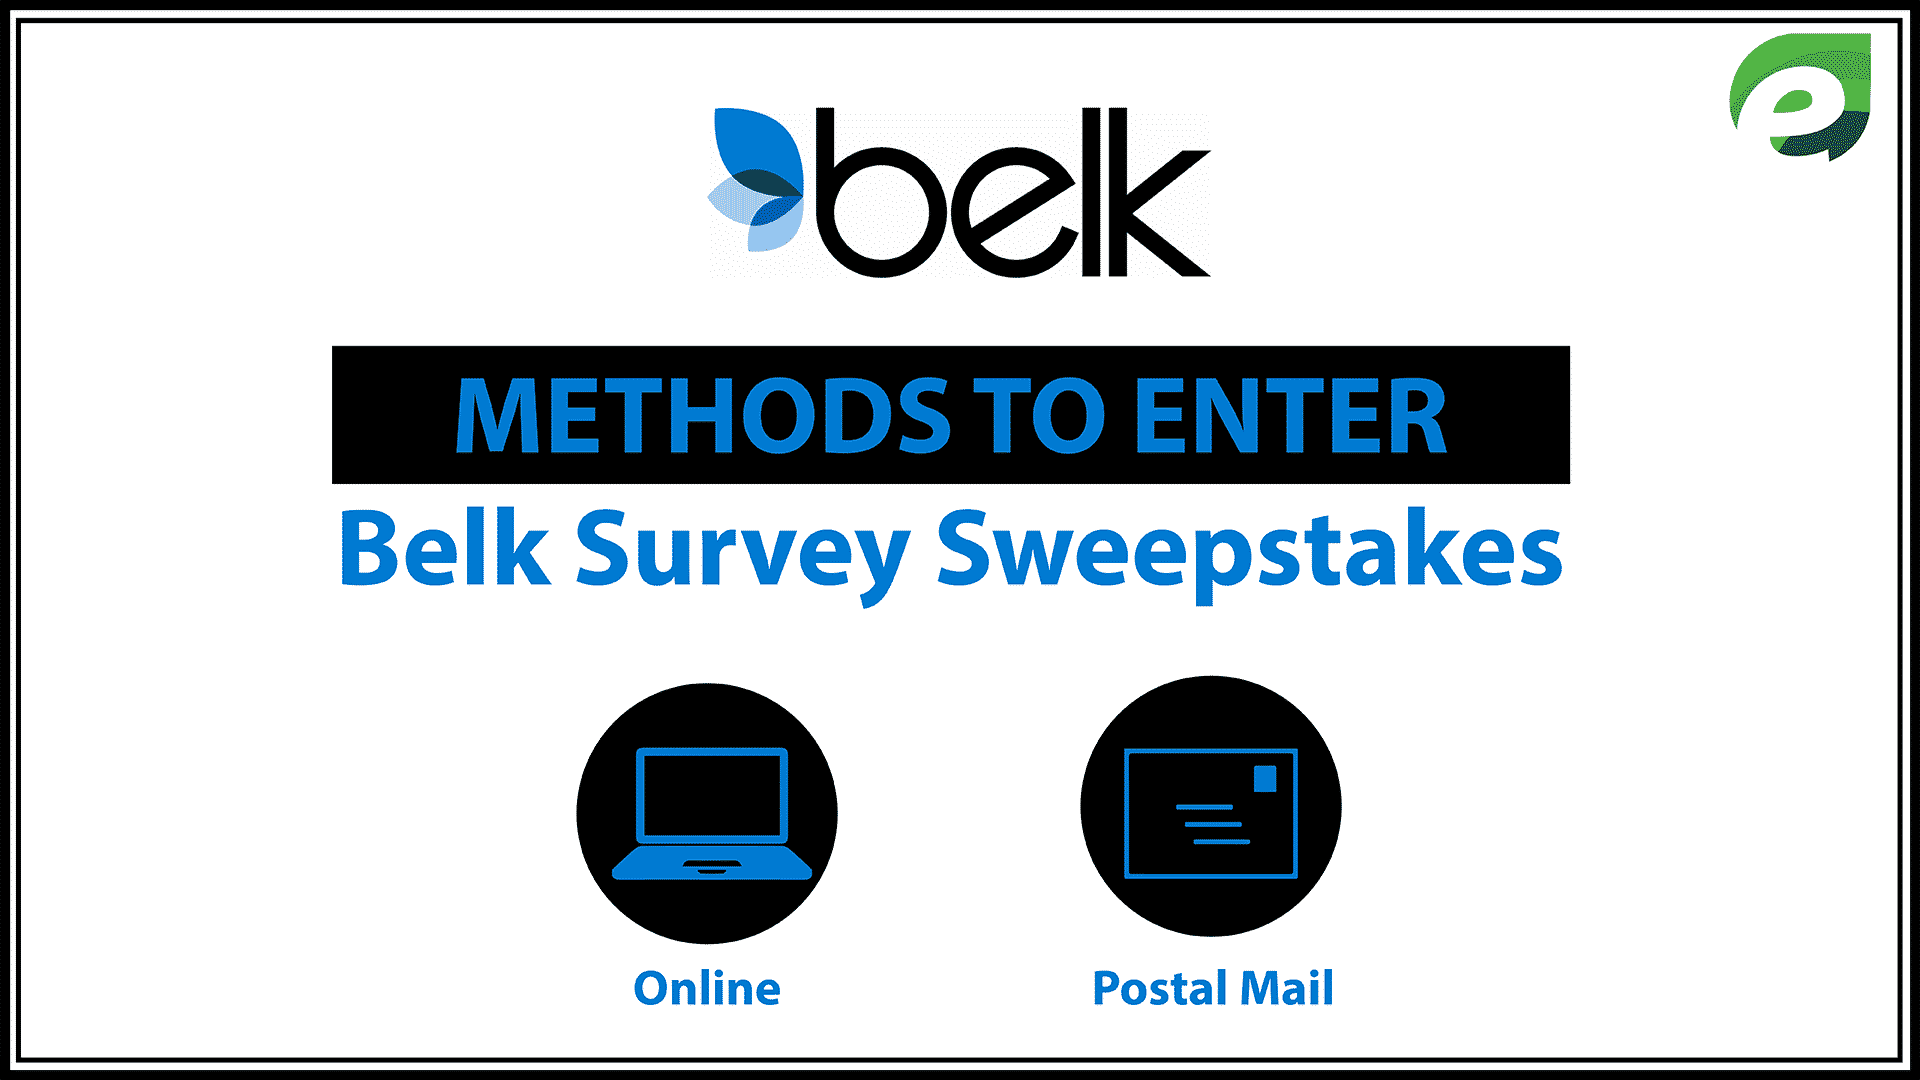 Belk Survey: Enter & Win $500 in www.belksurvey.com Guest Survey